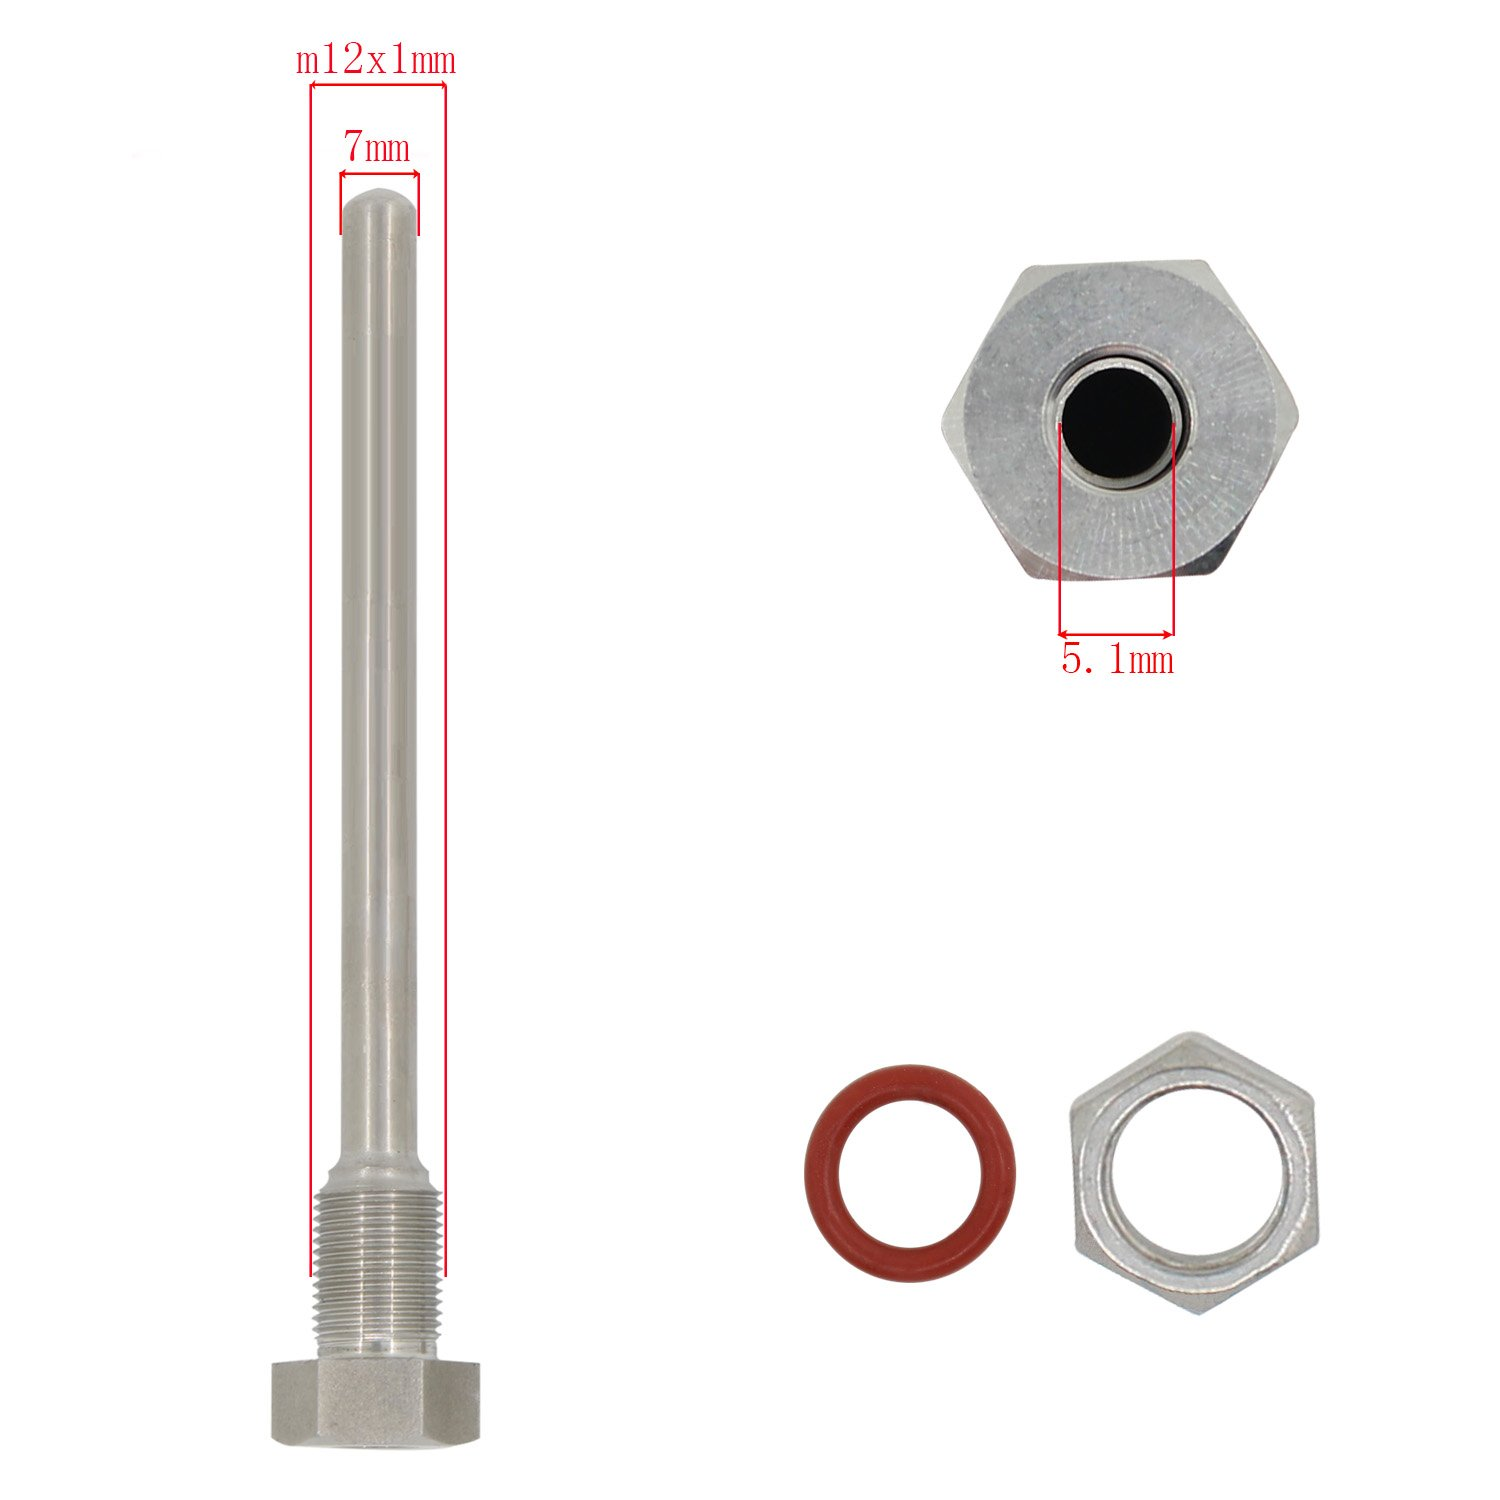 300mm for thermocouple Homebrew fermenter Temperature Control Controller Weldless thermowell m12x1 Stainless Steel 304 Immersion of 30 50 100 200 300 400 500